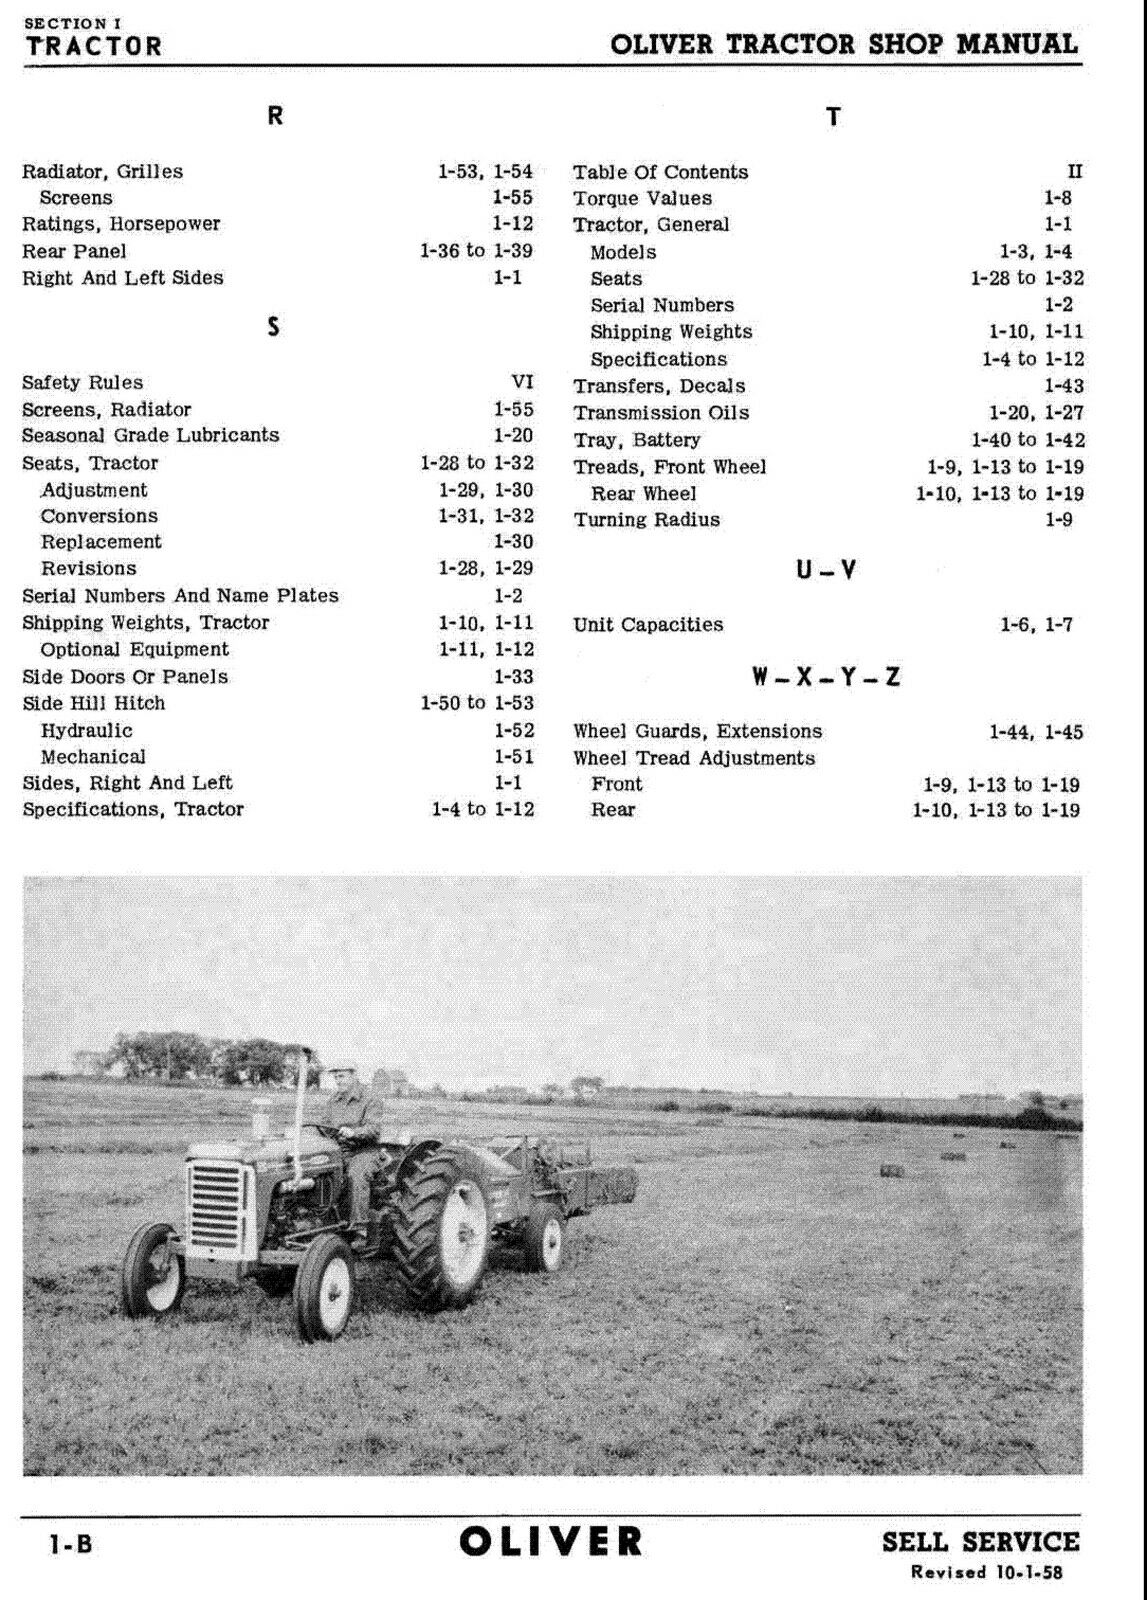 Oliver 550 Series Tractor Service Manual Parts -6- Manuals Best Searchable  DVD | eBay